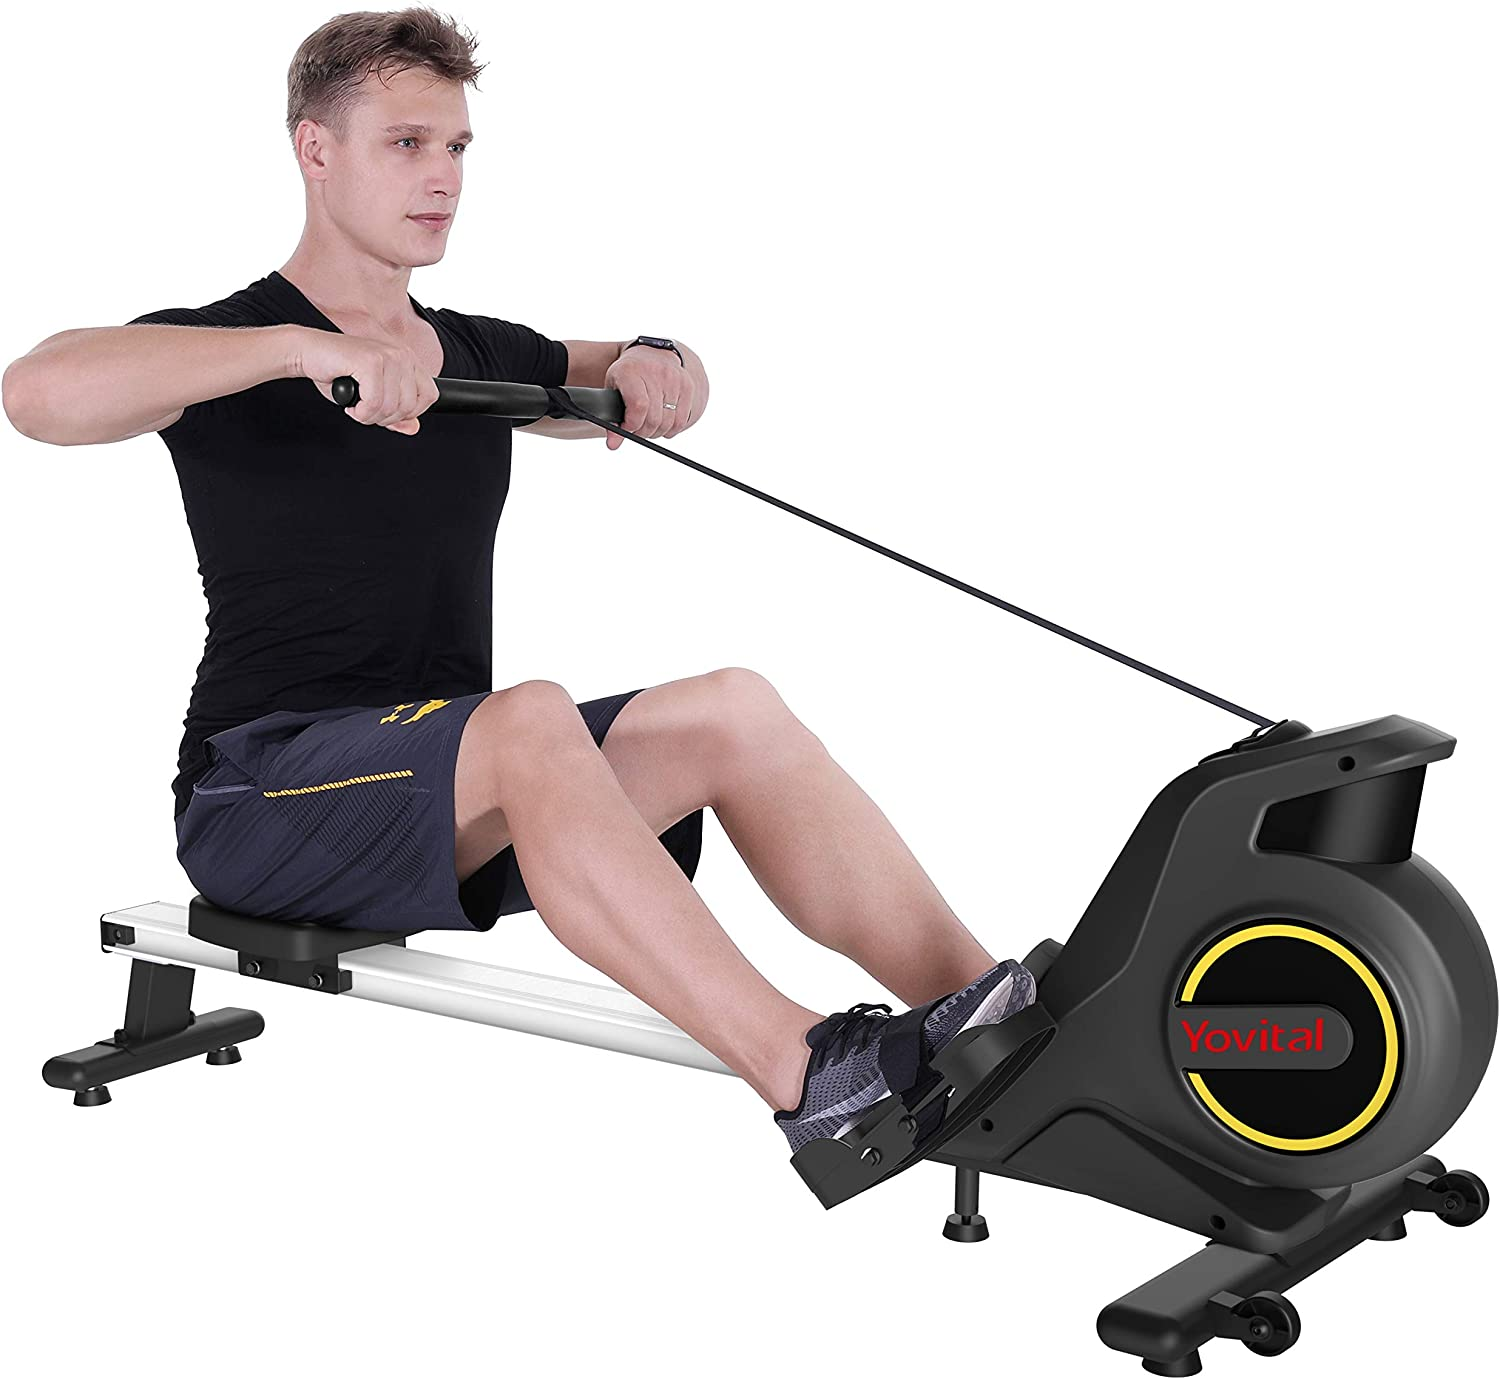 Best rowing machines under $600